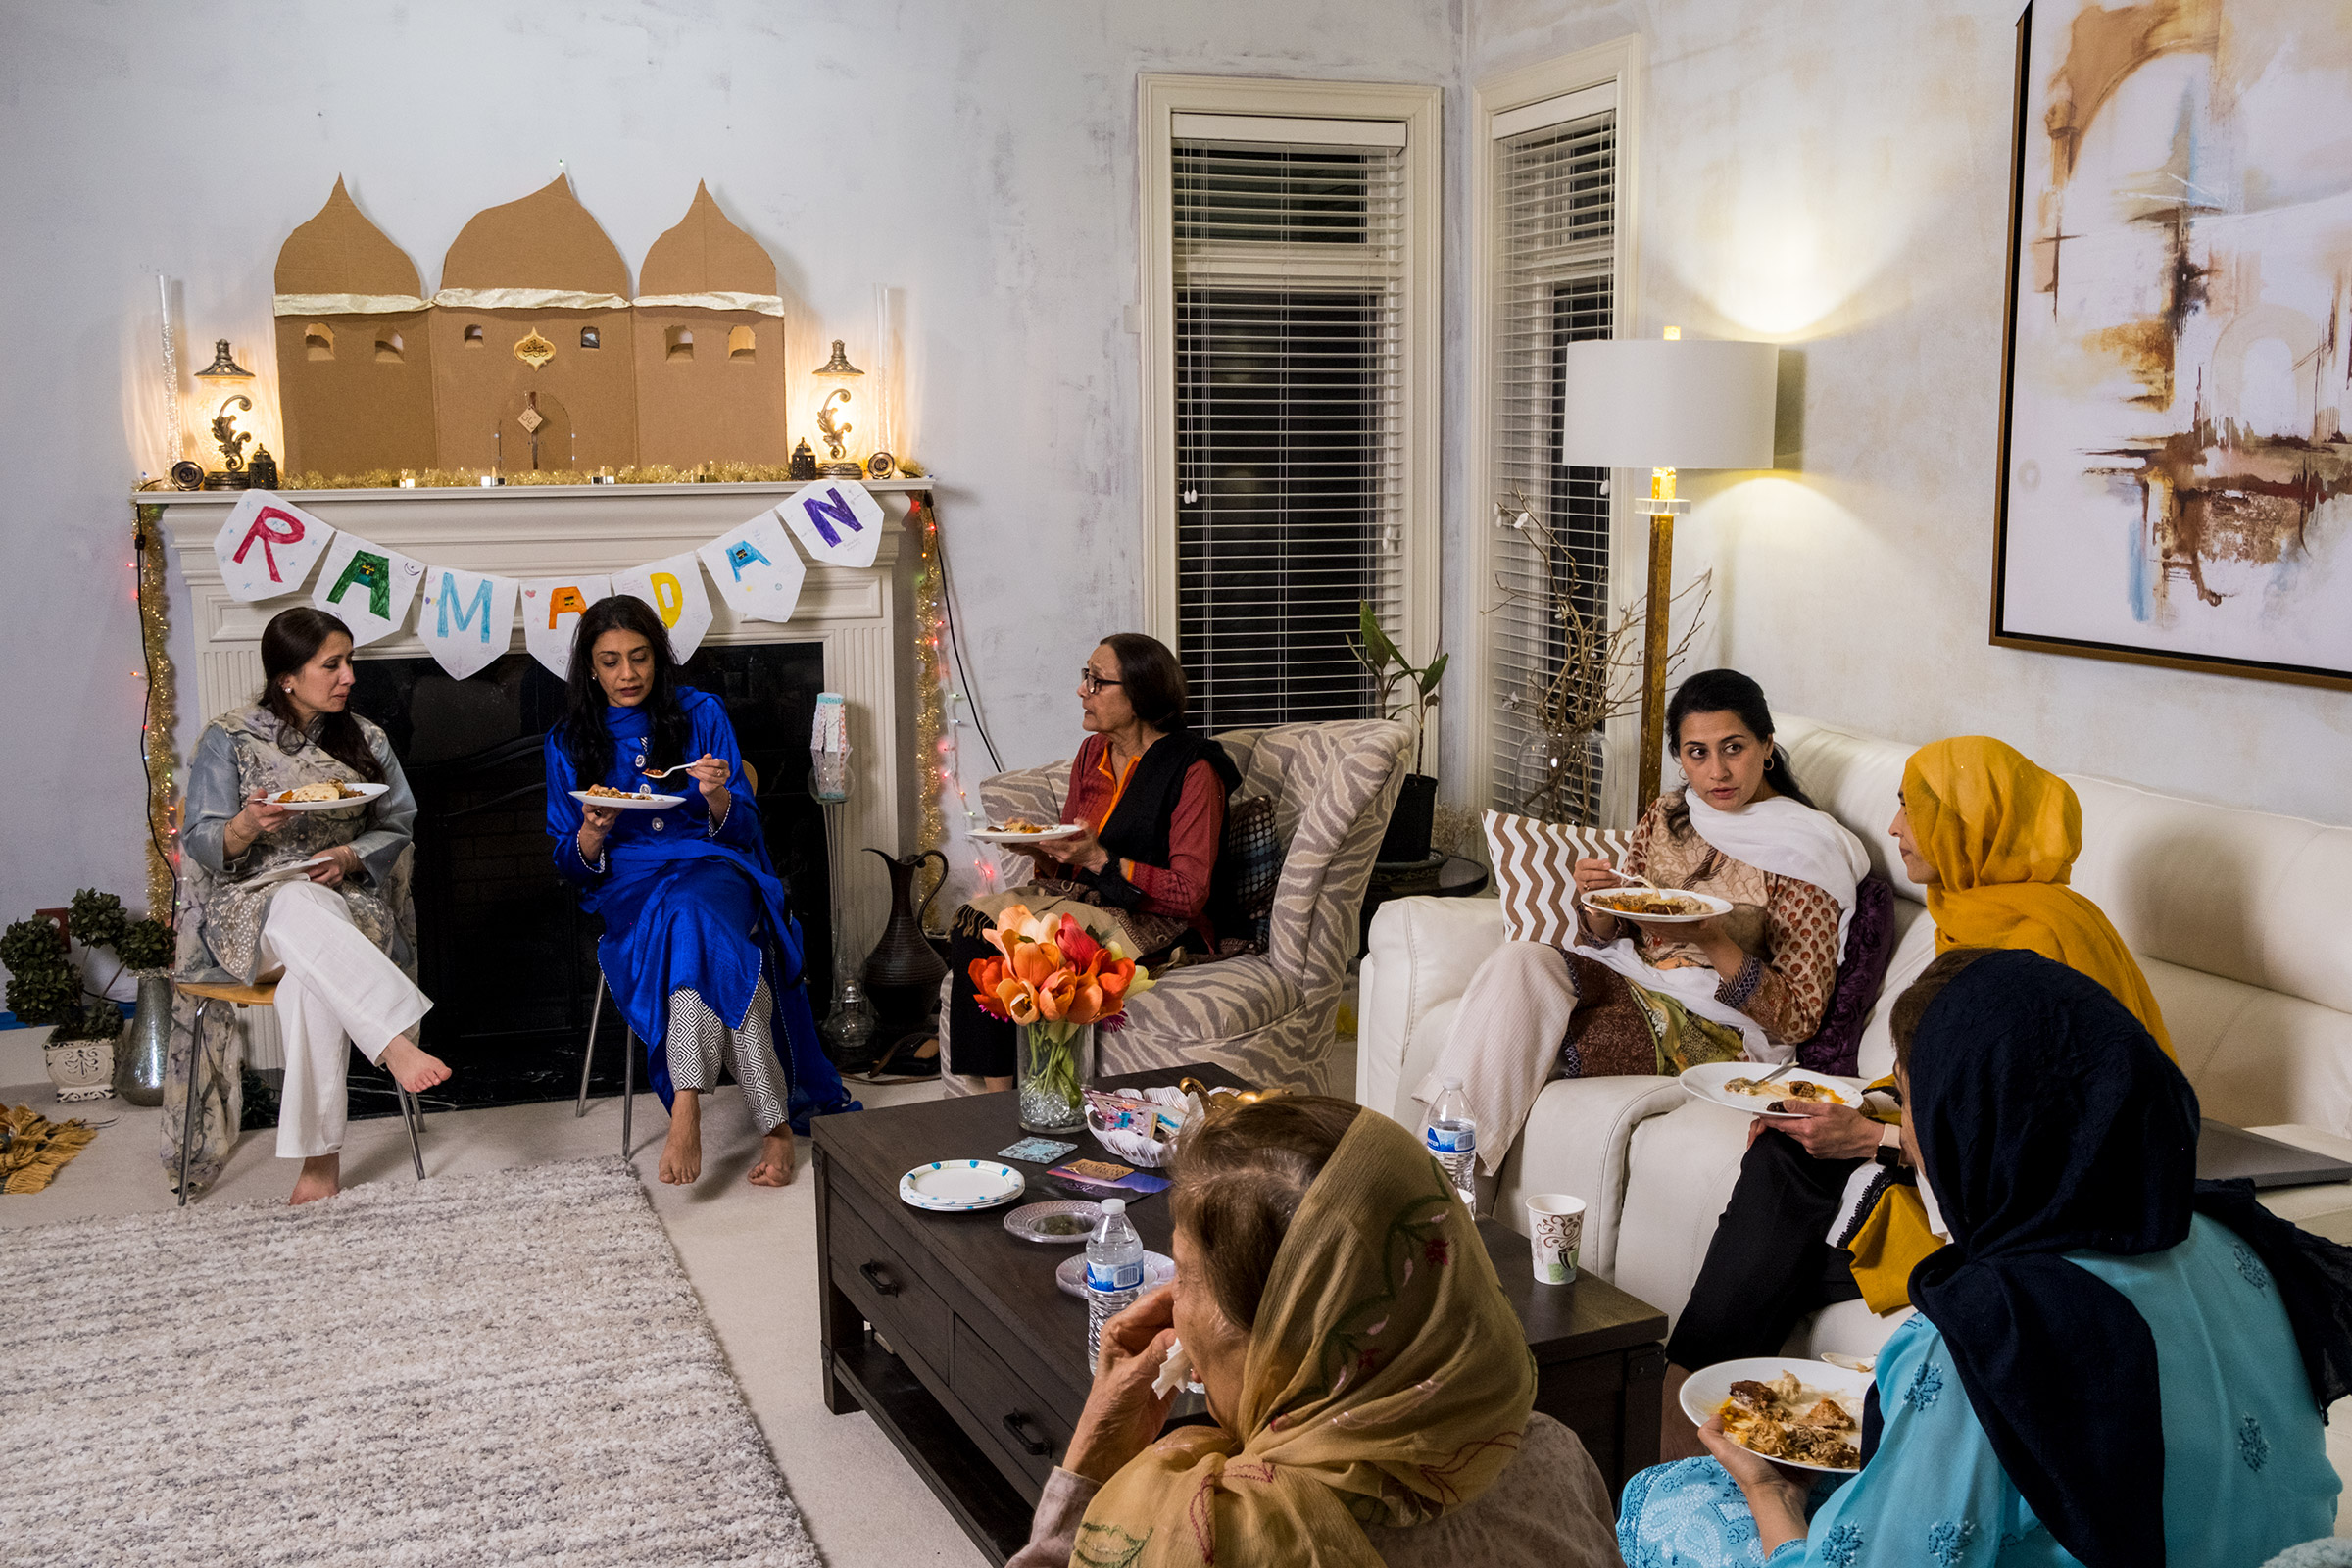 Muslim women break their fast with iftar and chat.